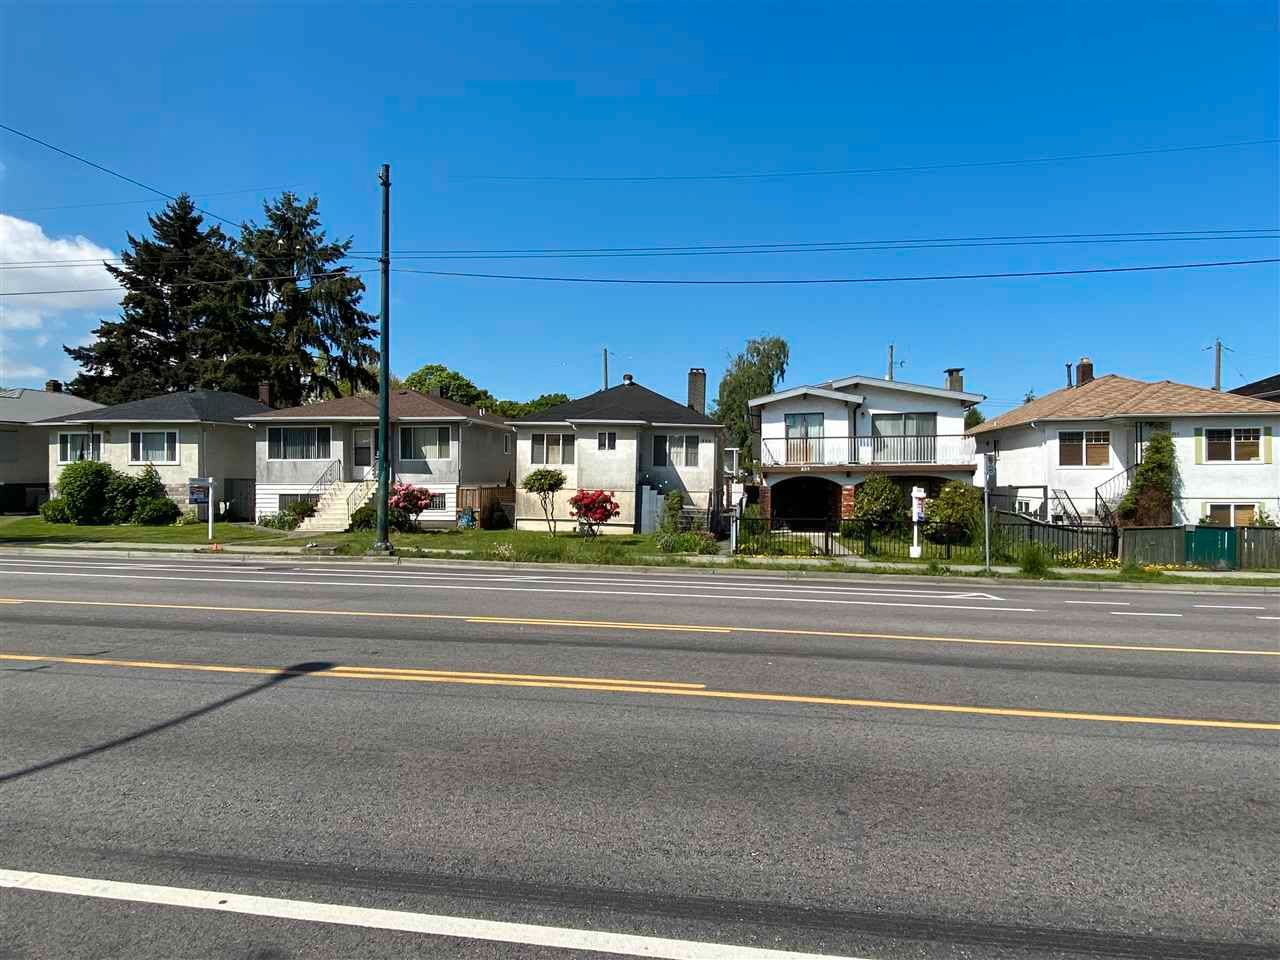 Photo 13: Photos: 839 NANAIMO Street in Vancouver: Hastings House for sale (Vancouver East)  : MLS®# R2569893